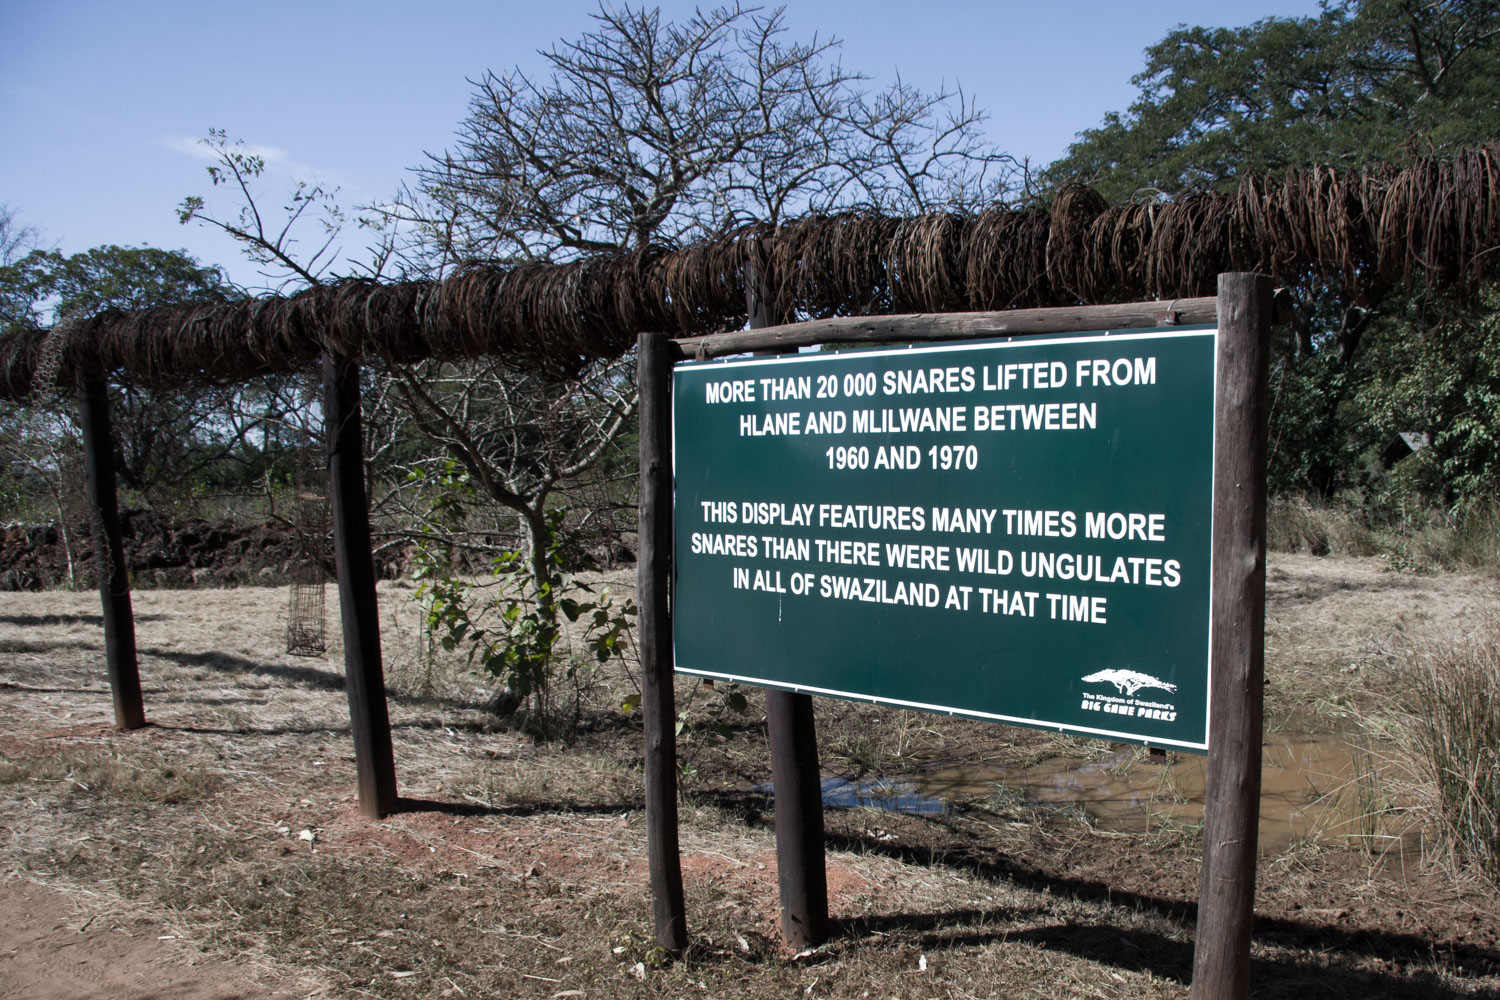 Snares in Swaziland